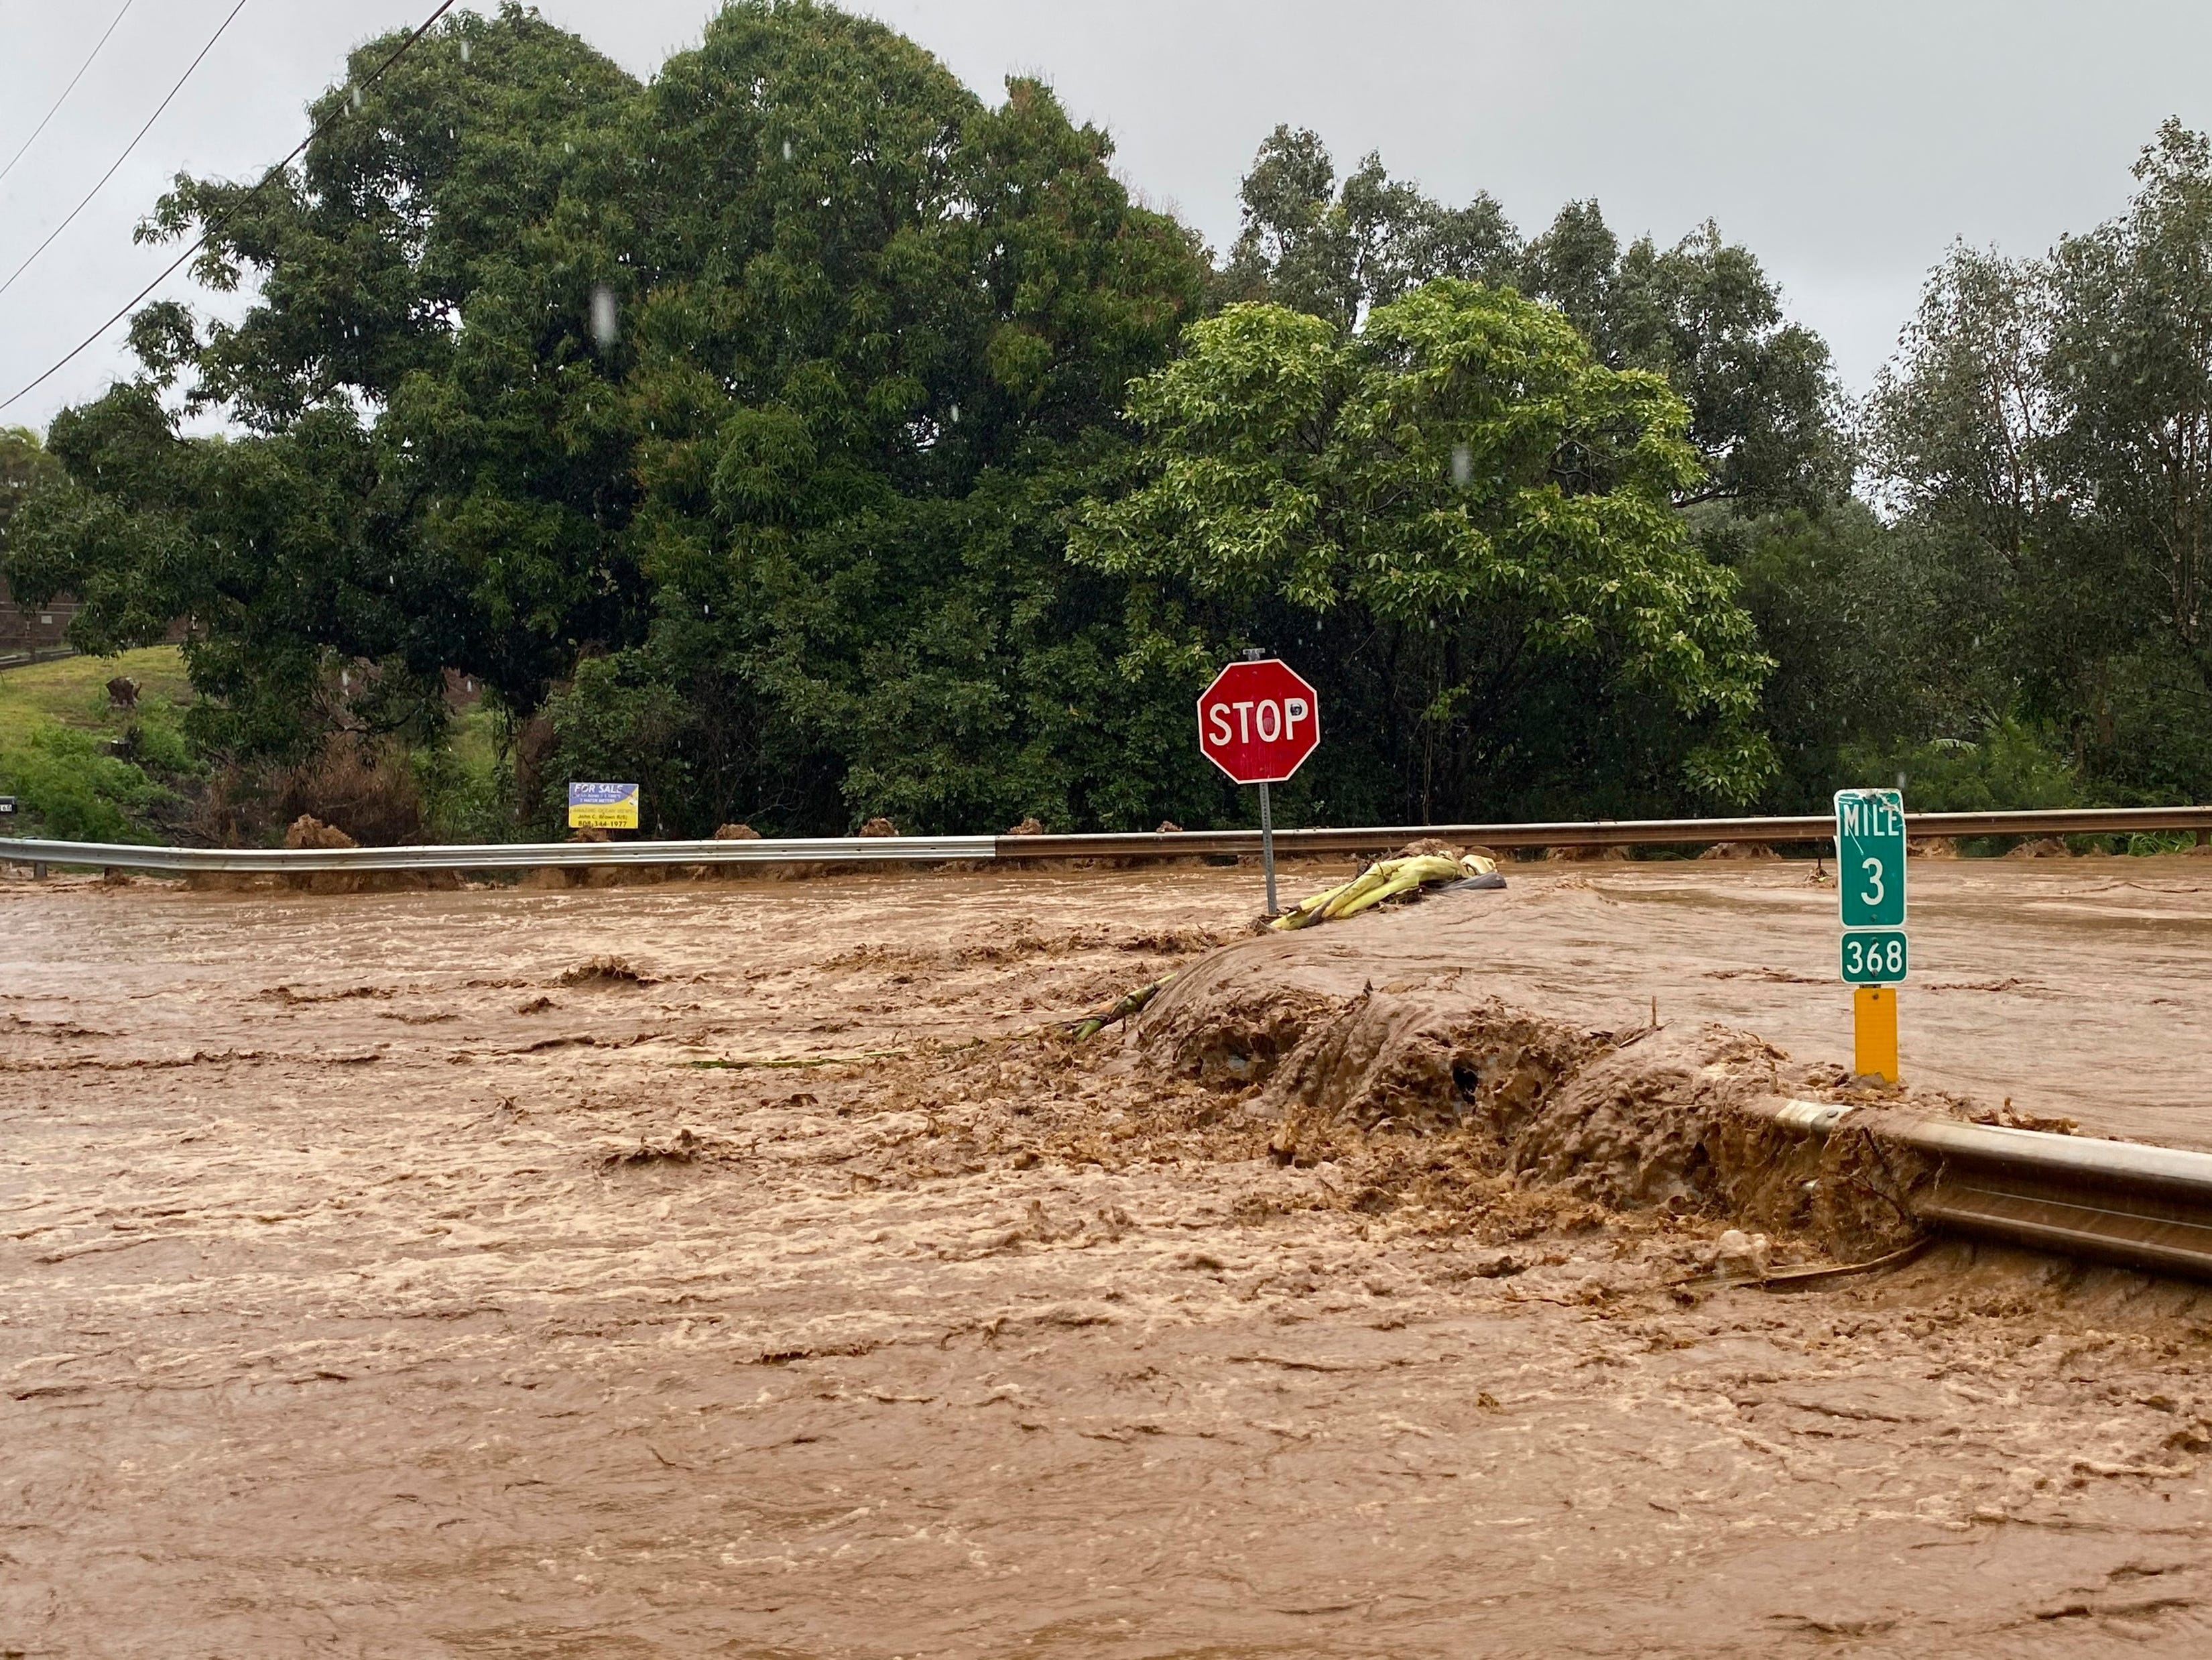 Heavy rains lead to crippling floods in Hawaii. Scientists warn of more occurrences due to climate change.